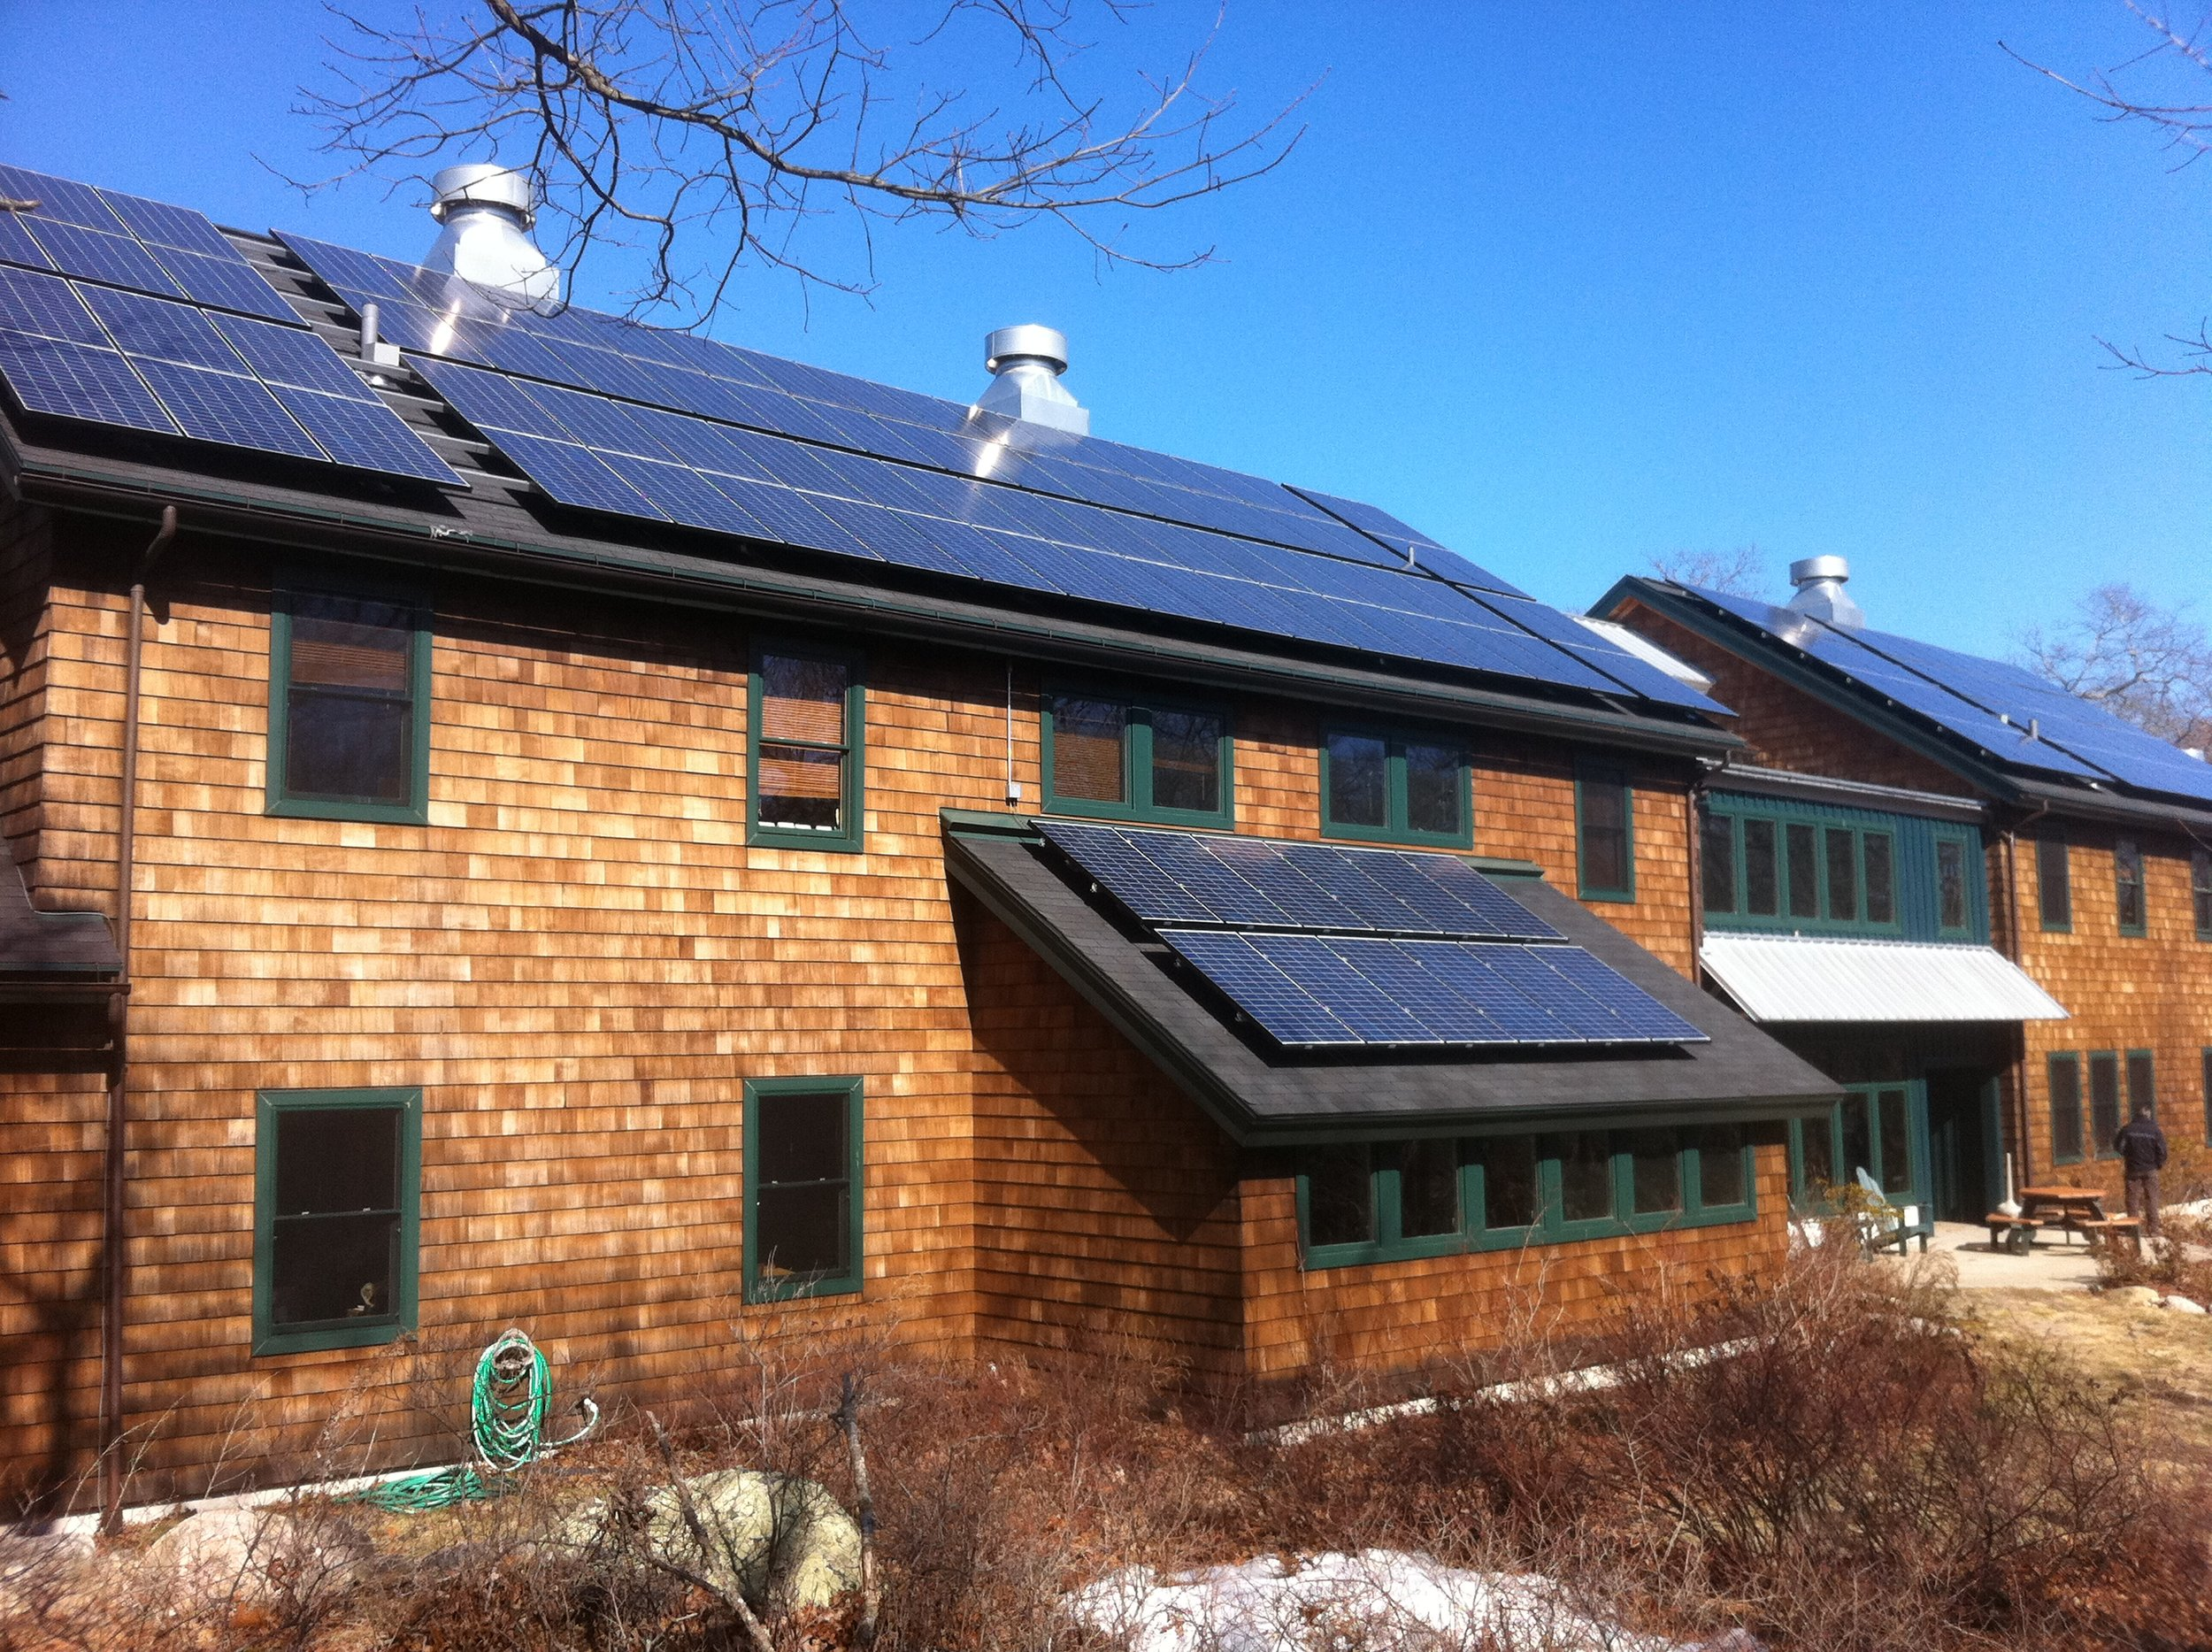 Kettle Pond USFWS Photovoltaic System